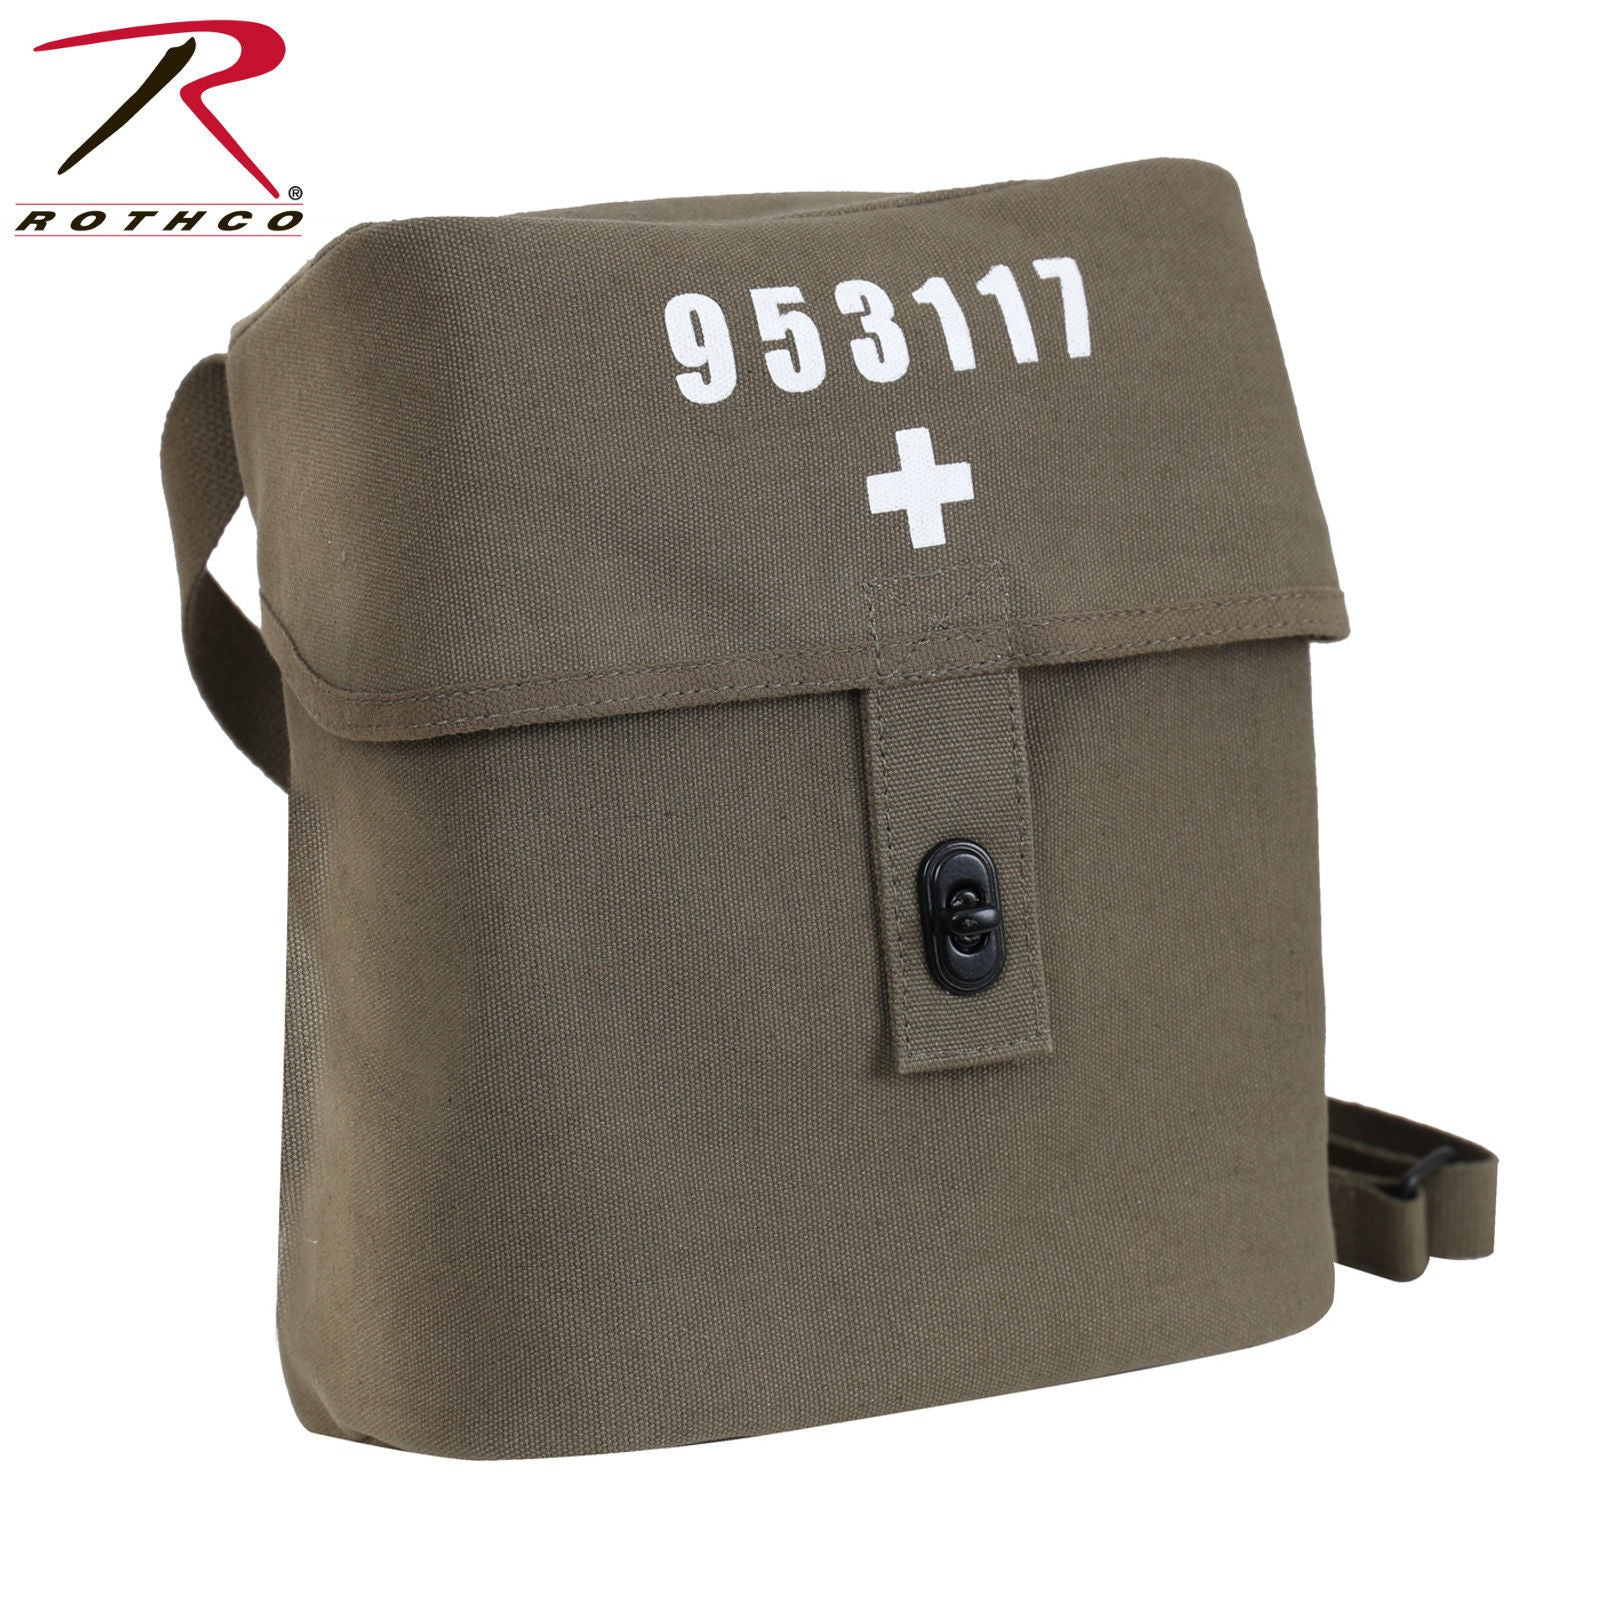 5561585405b3 Rothco Swiss Military Canvas Shoulder Bag - Military Tactical Medic Style  Bag. Zoom. Move your mouse over image or click to enlarge